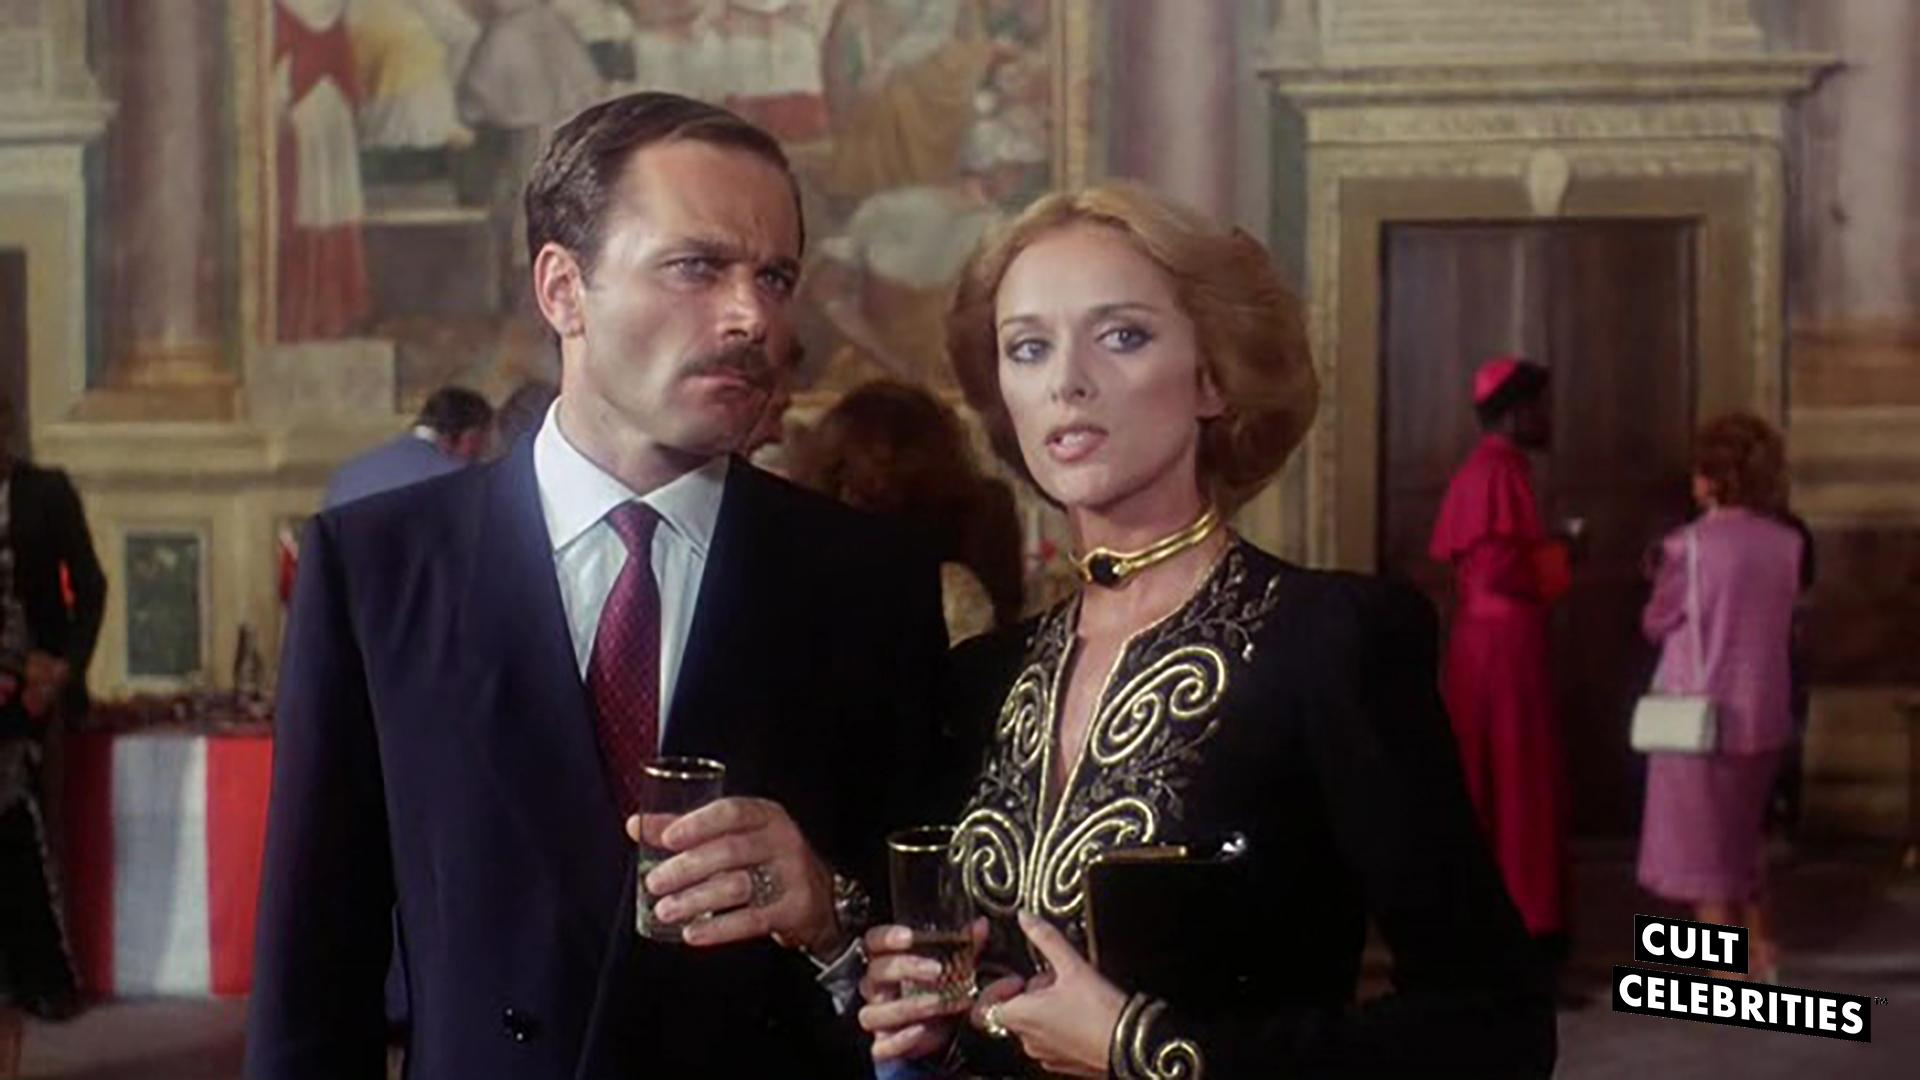 Franco Nero and Sybil Danning in The Salamander (1981)